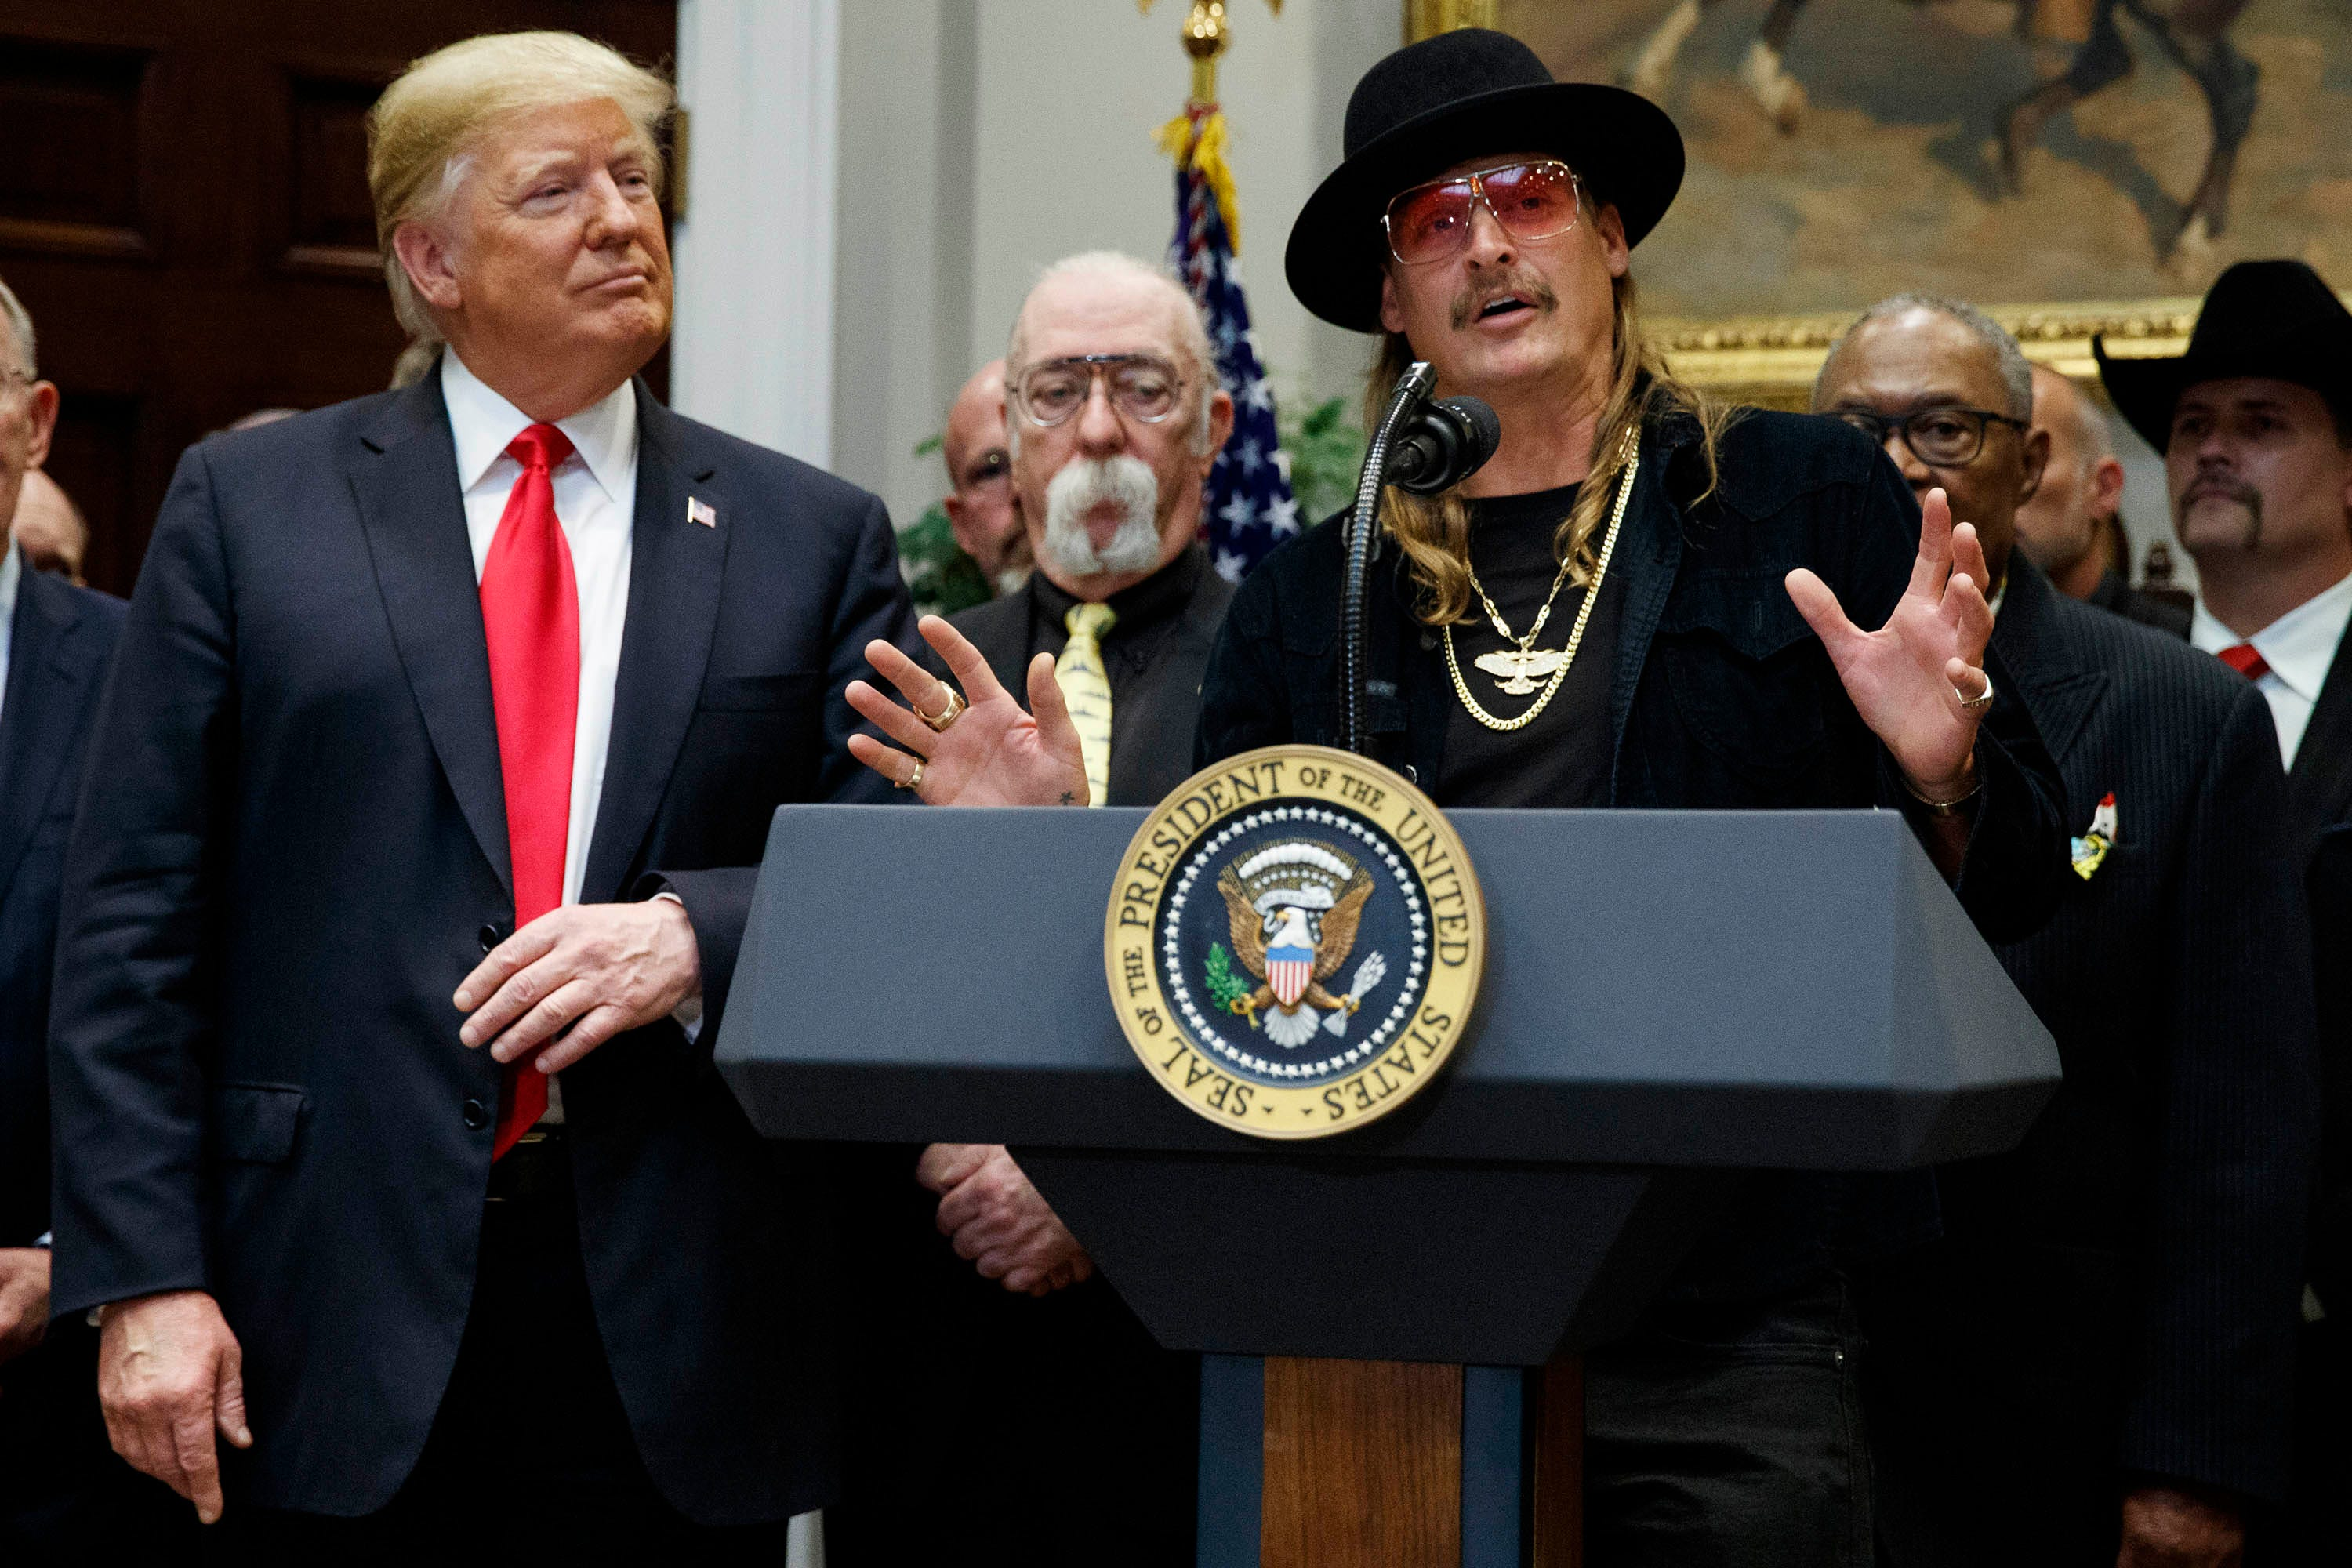 Kid Rock cleared of federal election violations after last year's Senate gimmick